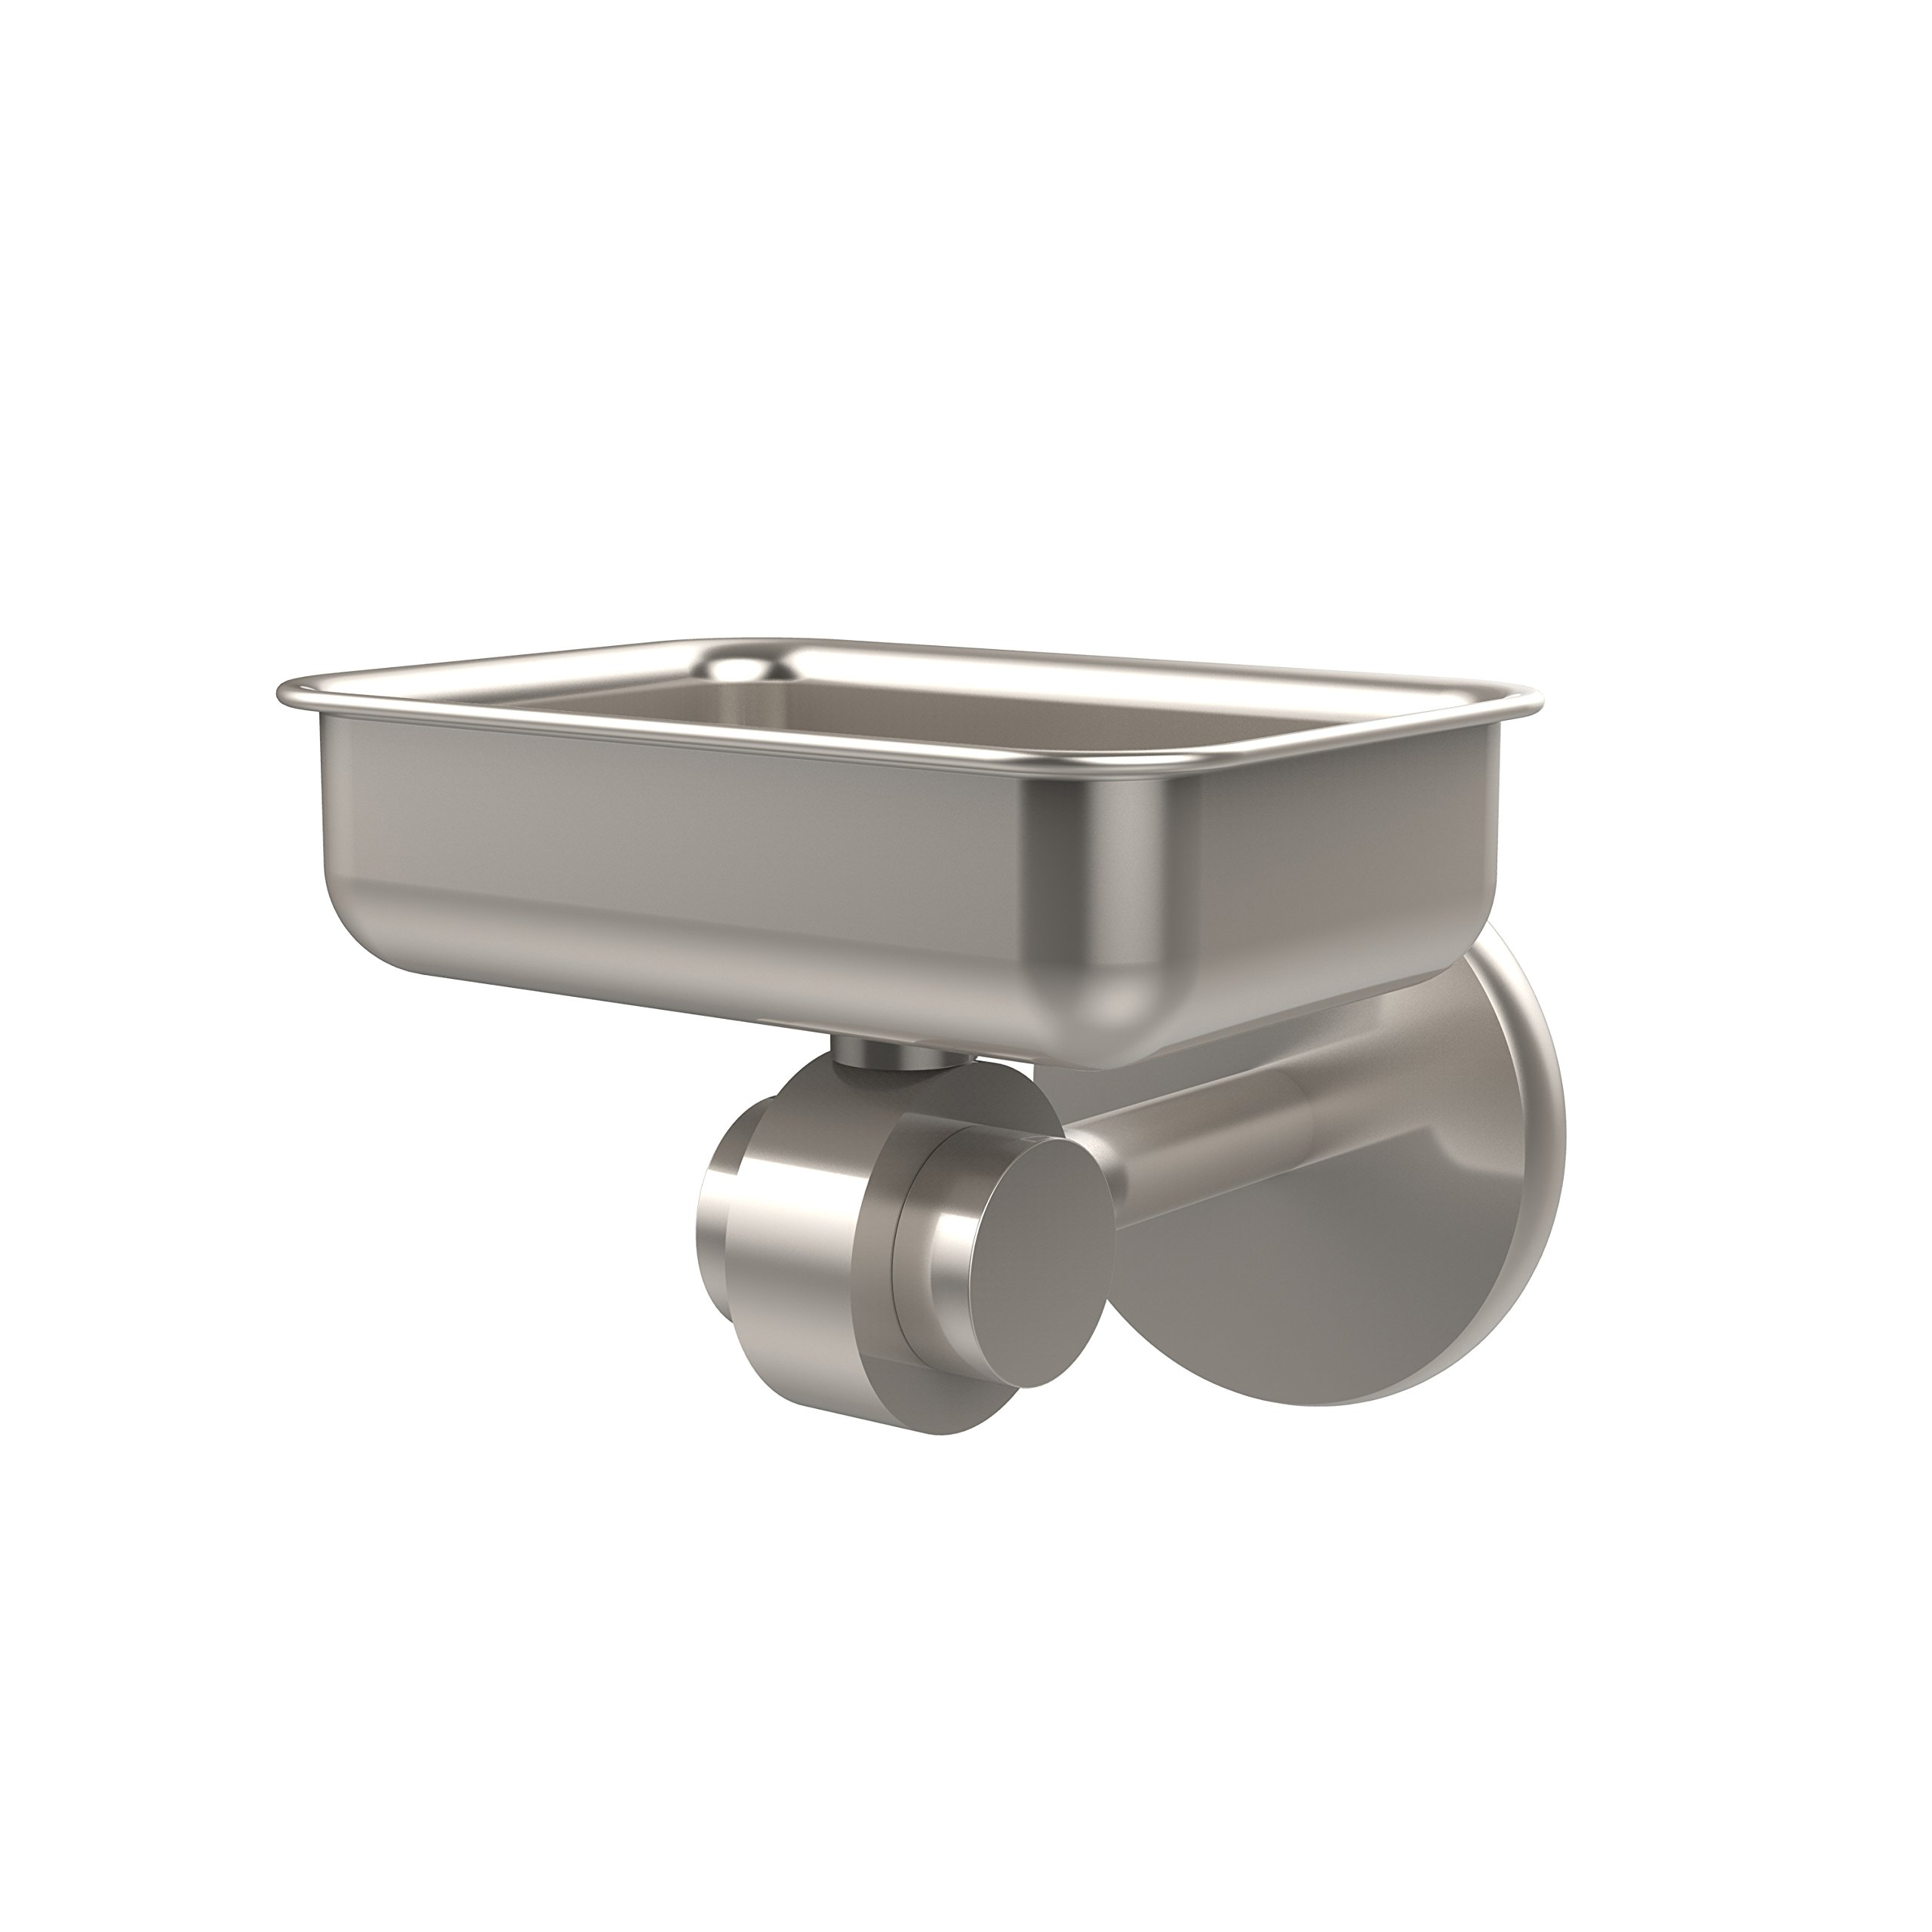 Allied Brass 7232-SN Satellite Orbit Two Collection Wall Mounted Soap Dish, Satin Nickel